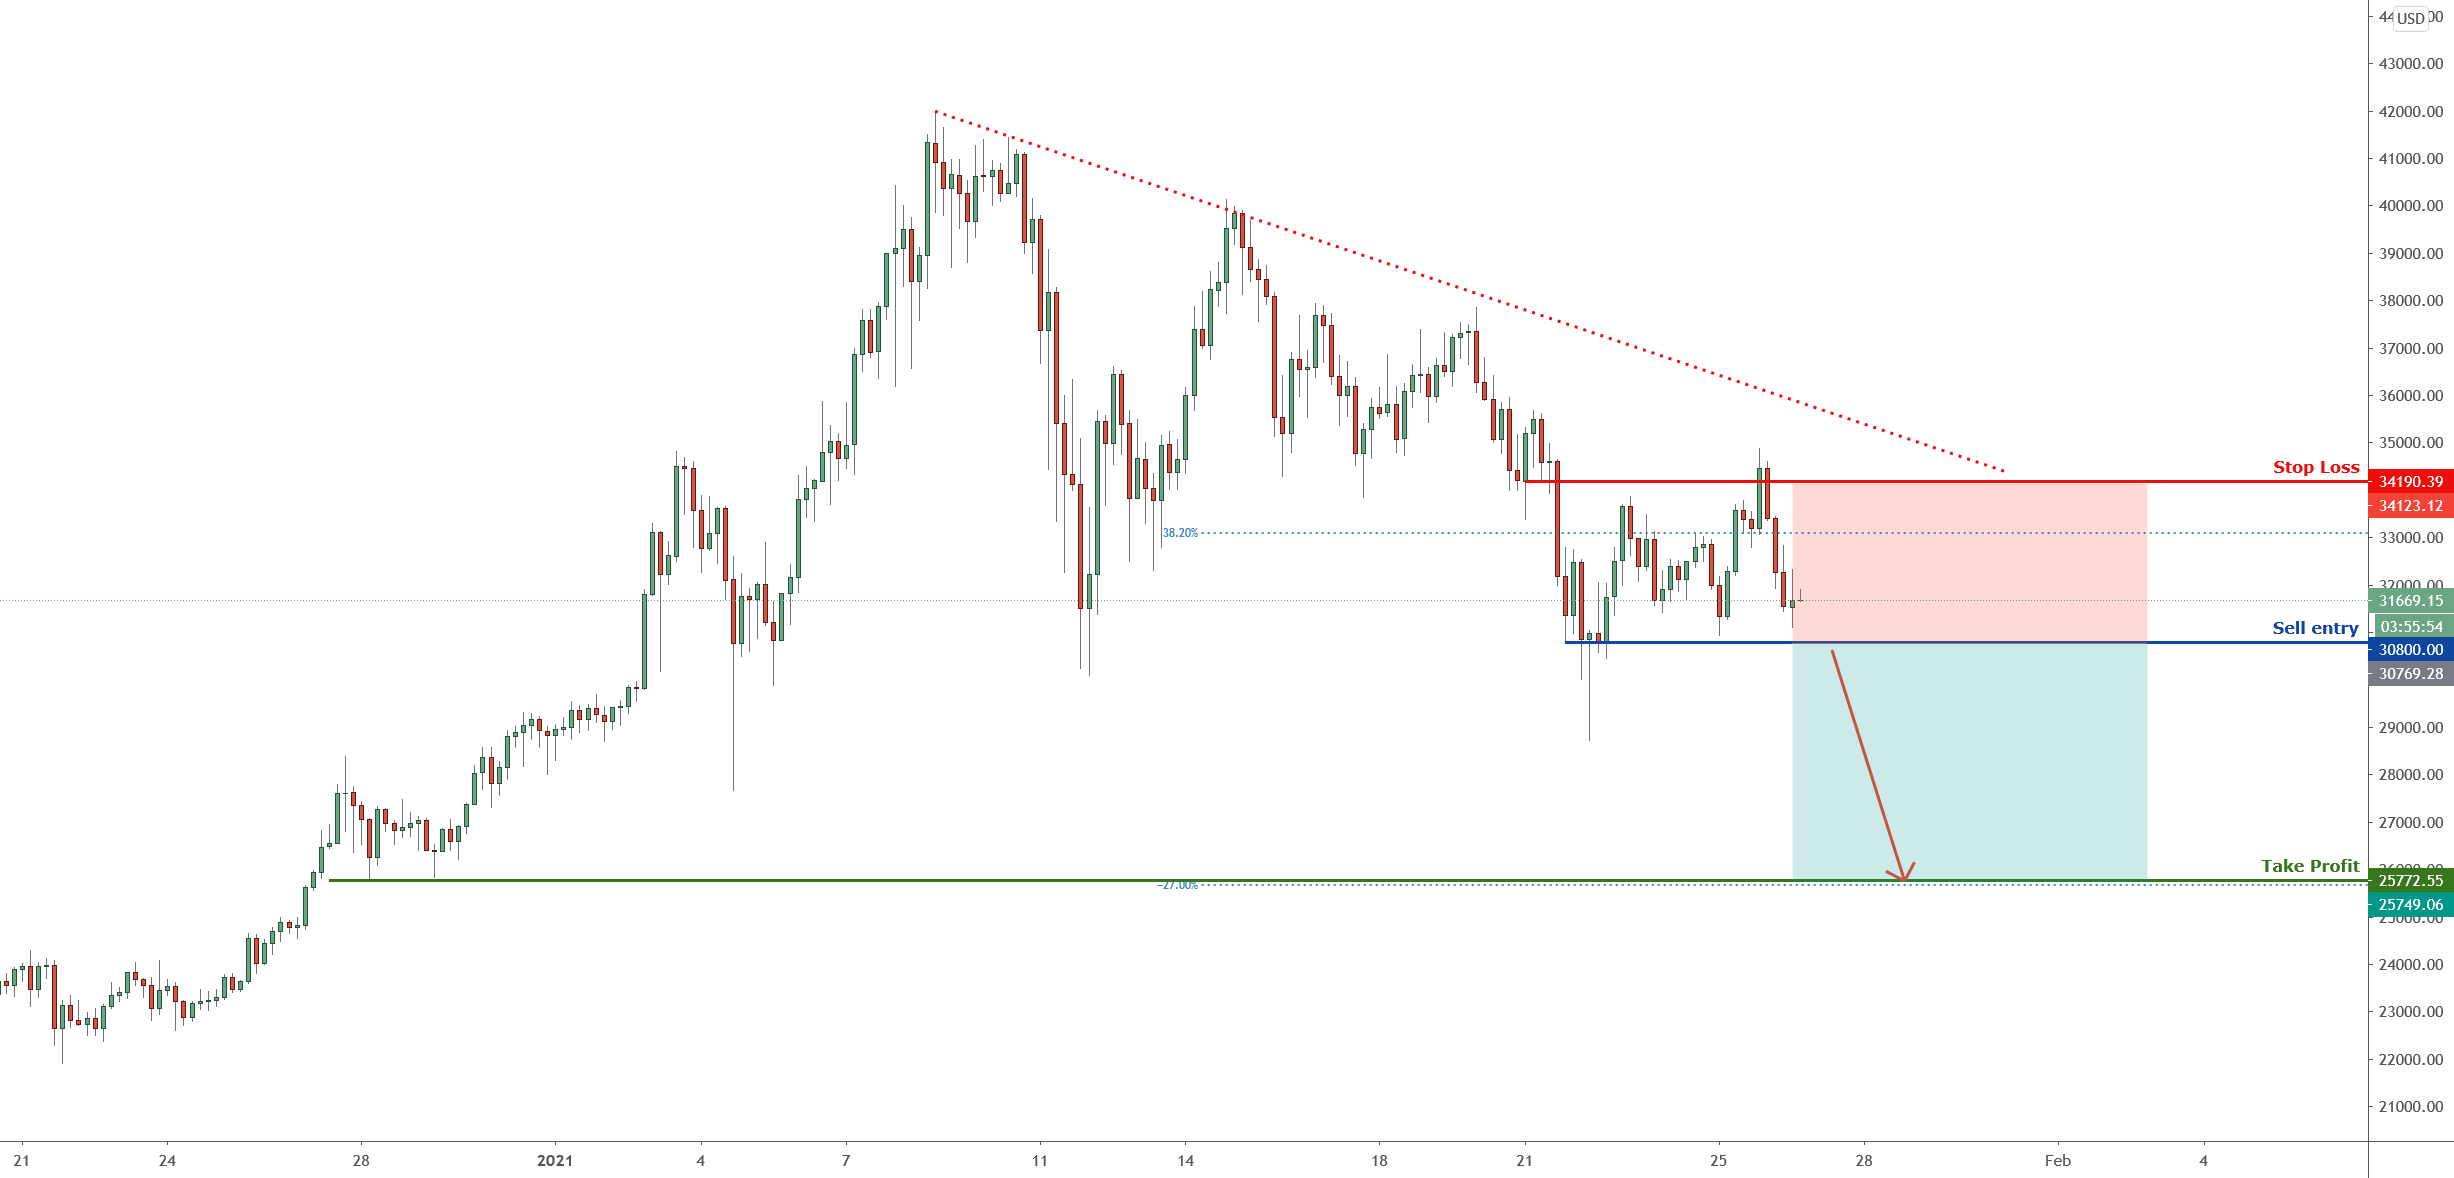 BTC to reverse, potential drop! |26 Jan 2021 for COINBASE:BTCUSD by FXCM